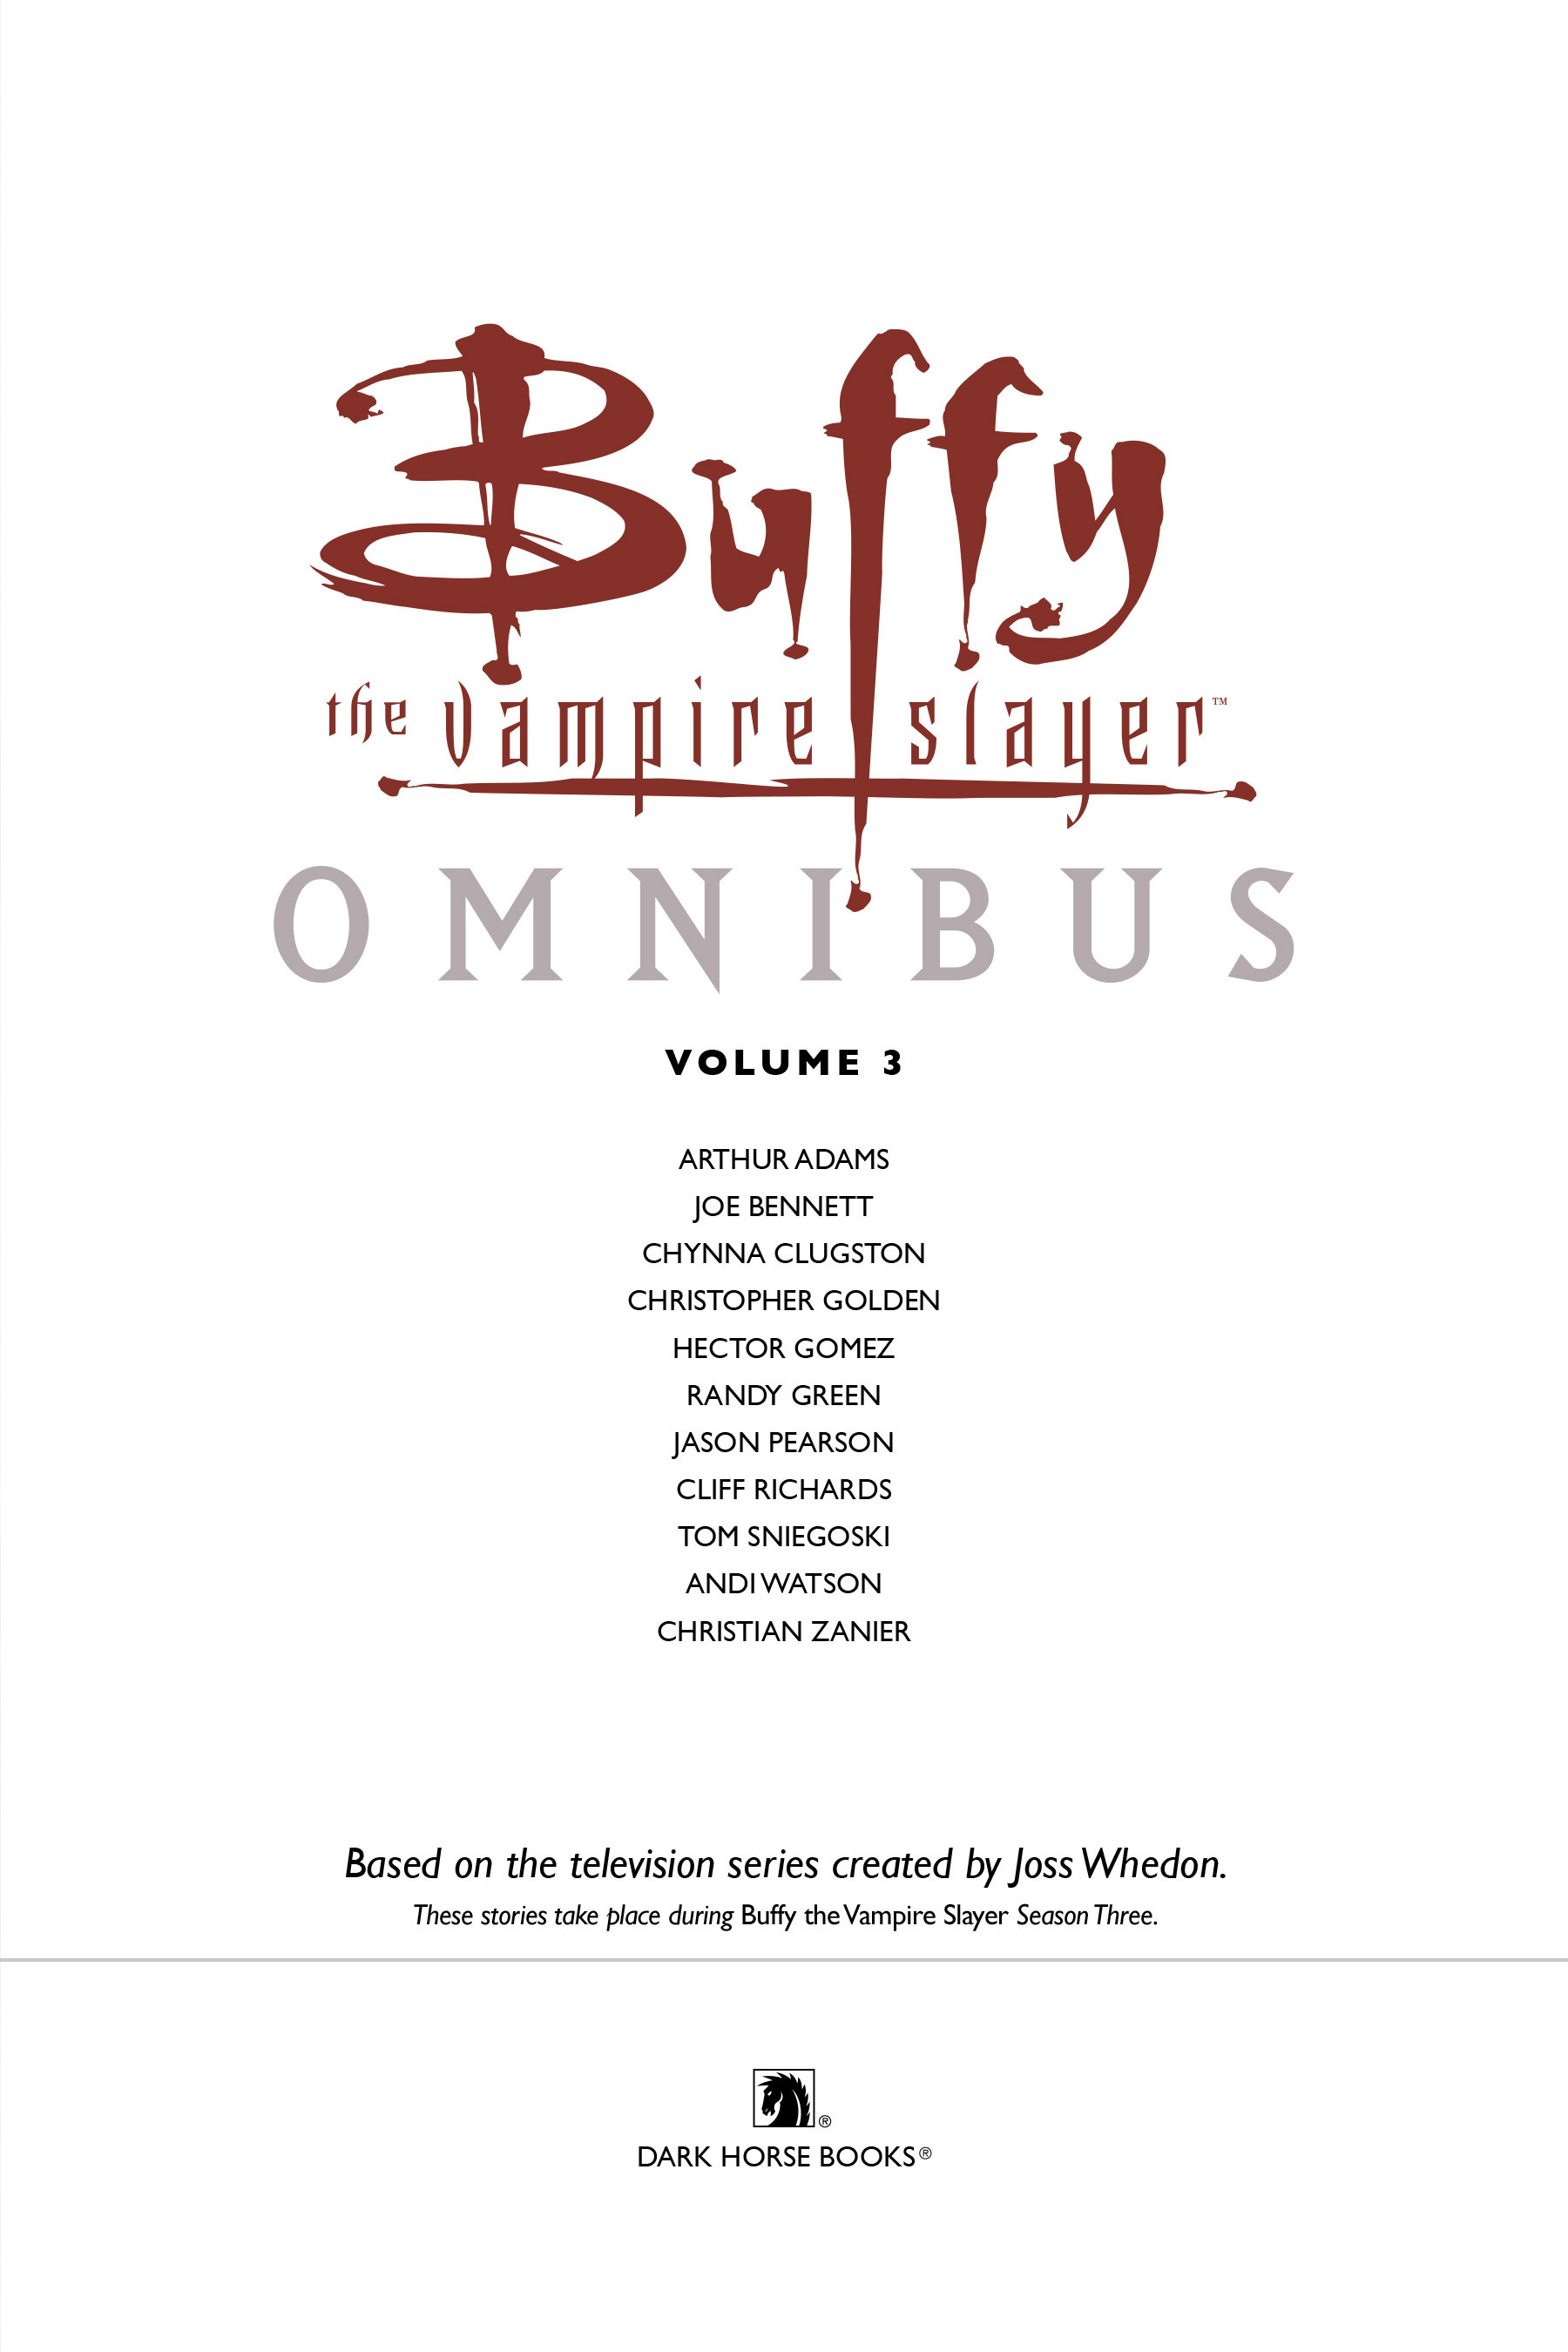 Read online Buffy the Vampire Slayer: Omnibus comic -  Issue # TPB 3 - 4